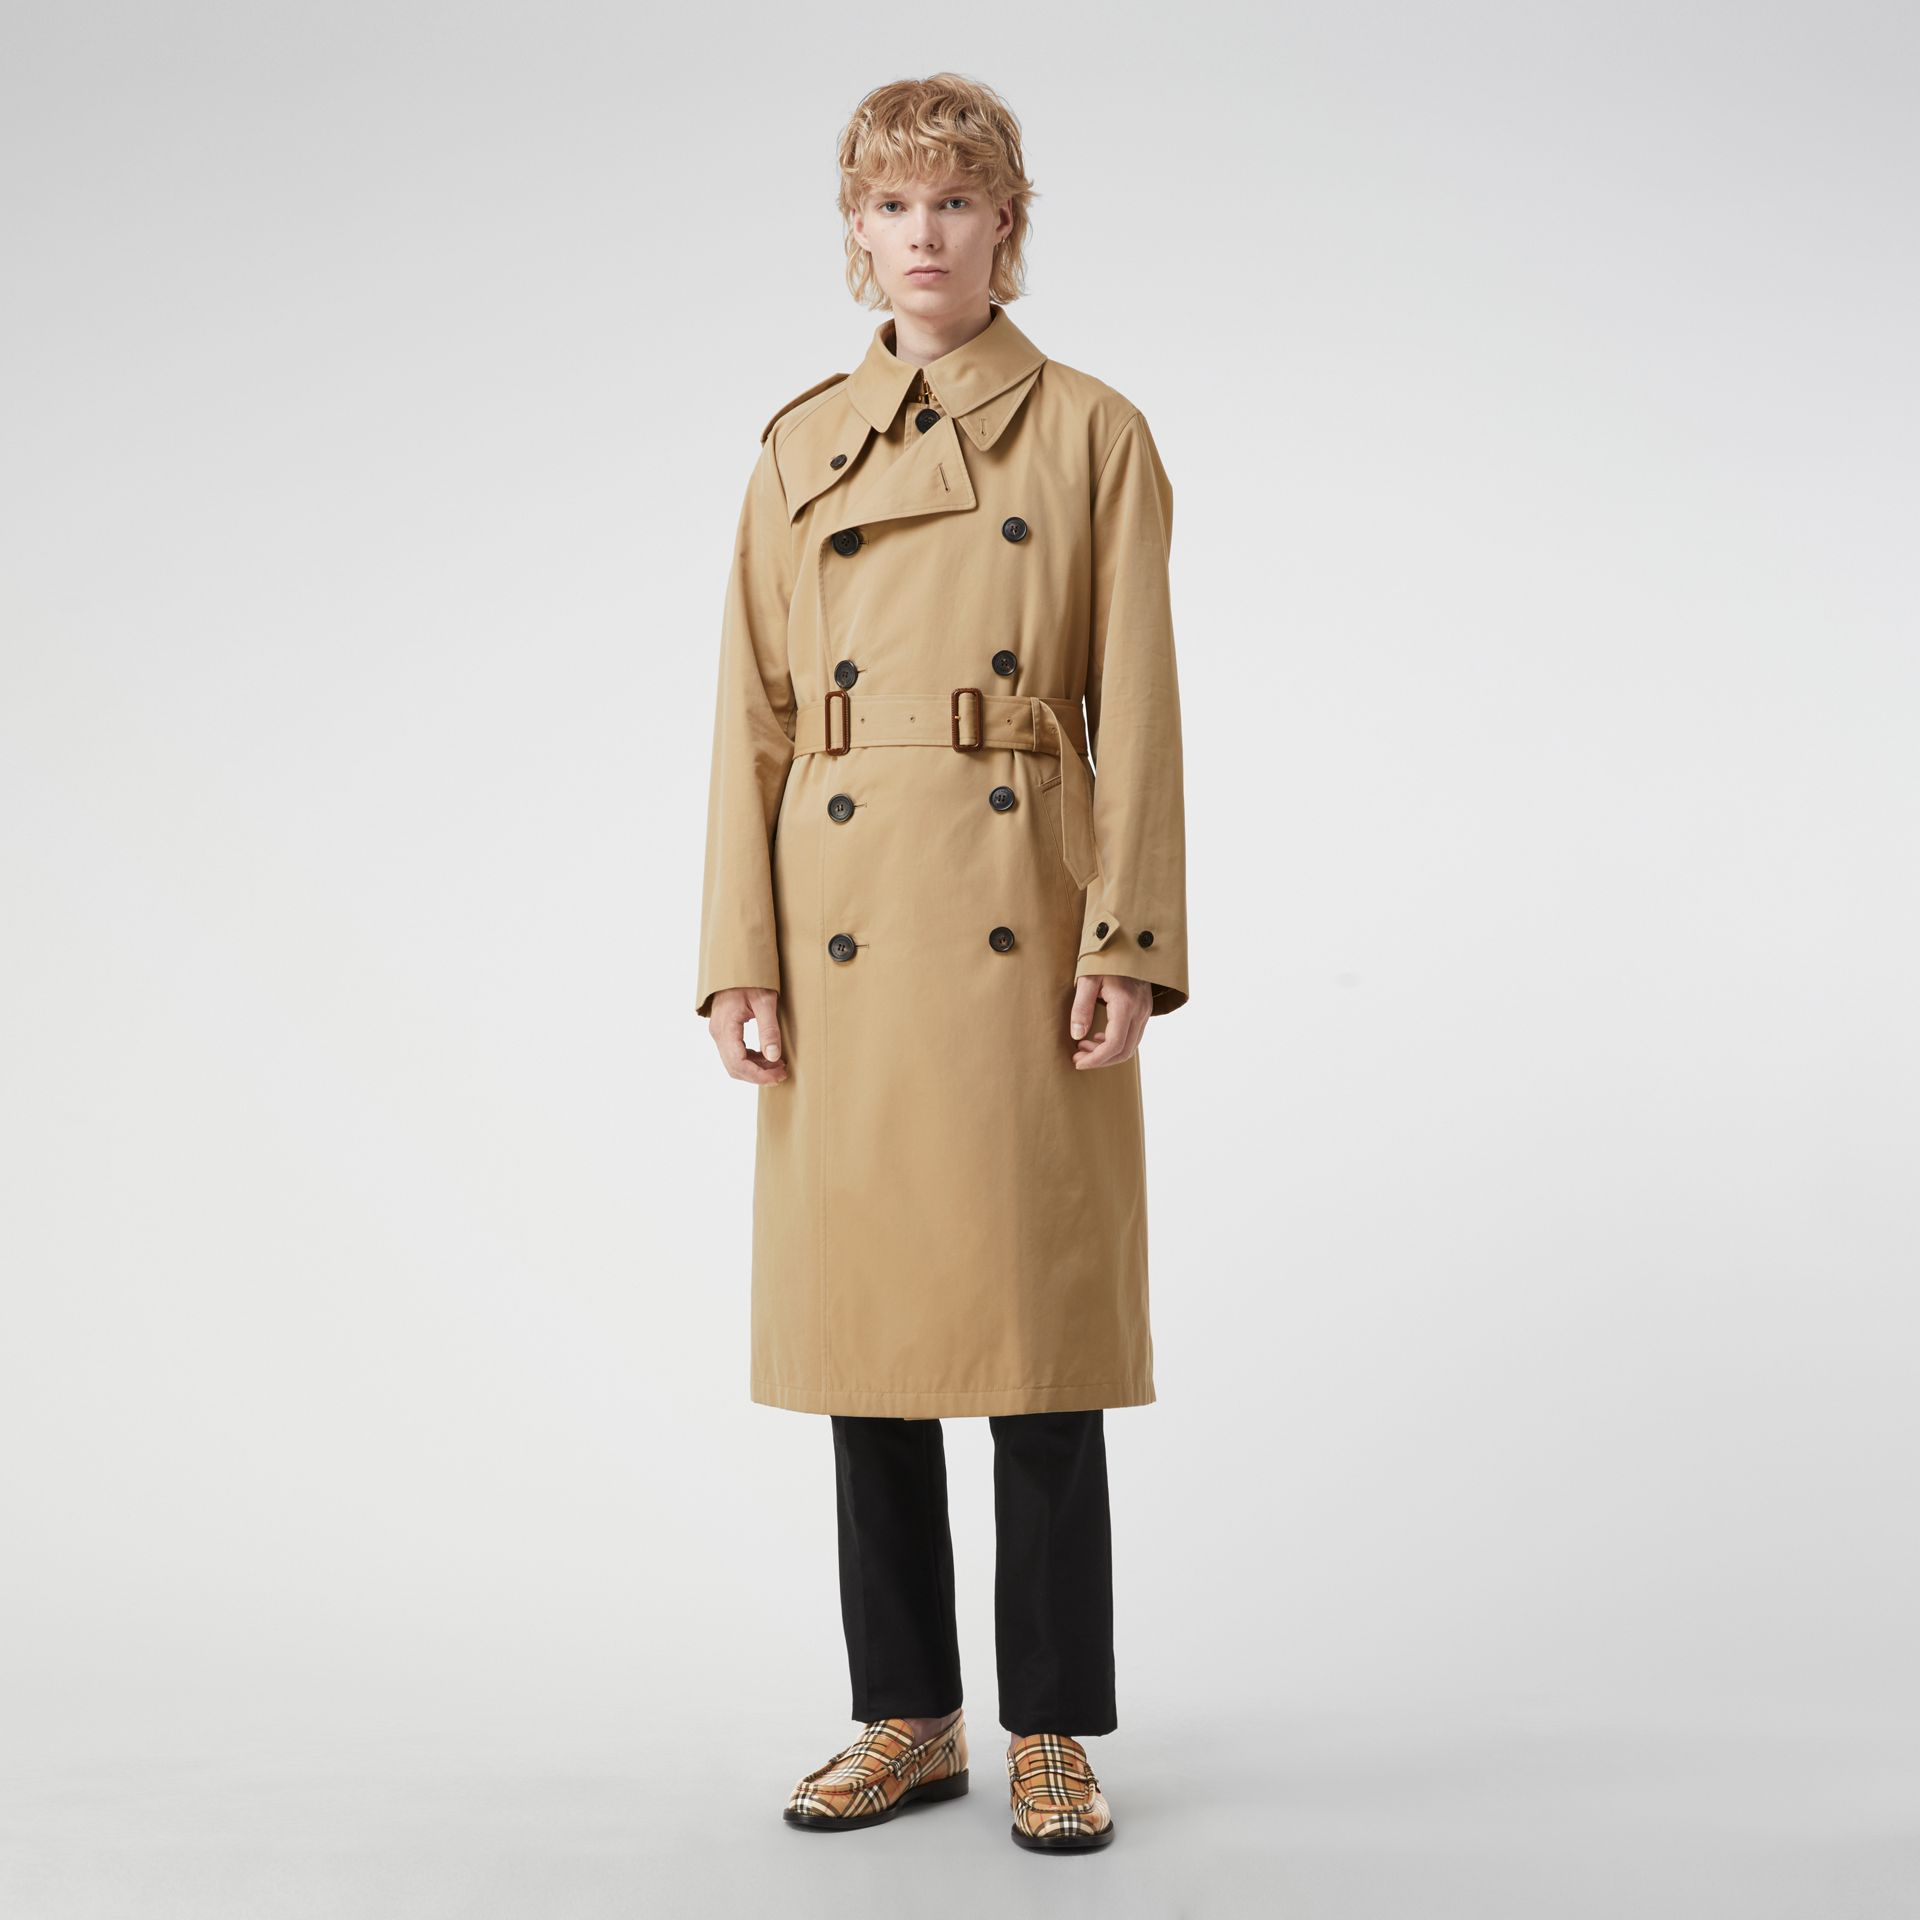 Gosha x Burberry Reconstructed Trench Coat in Honey | Burberry - gallery image 6